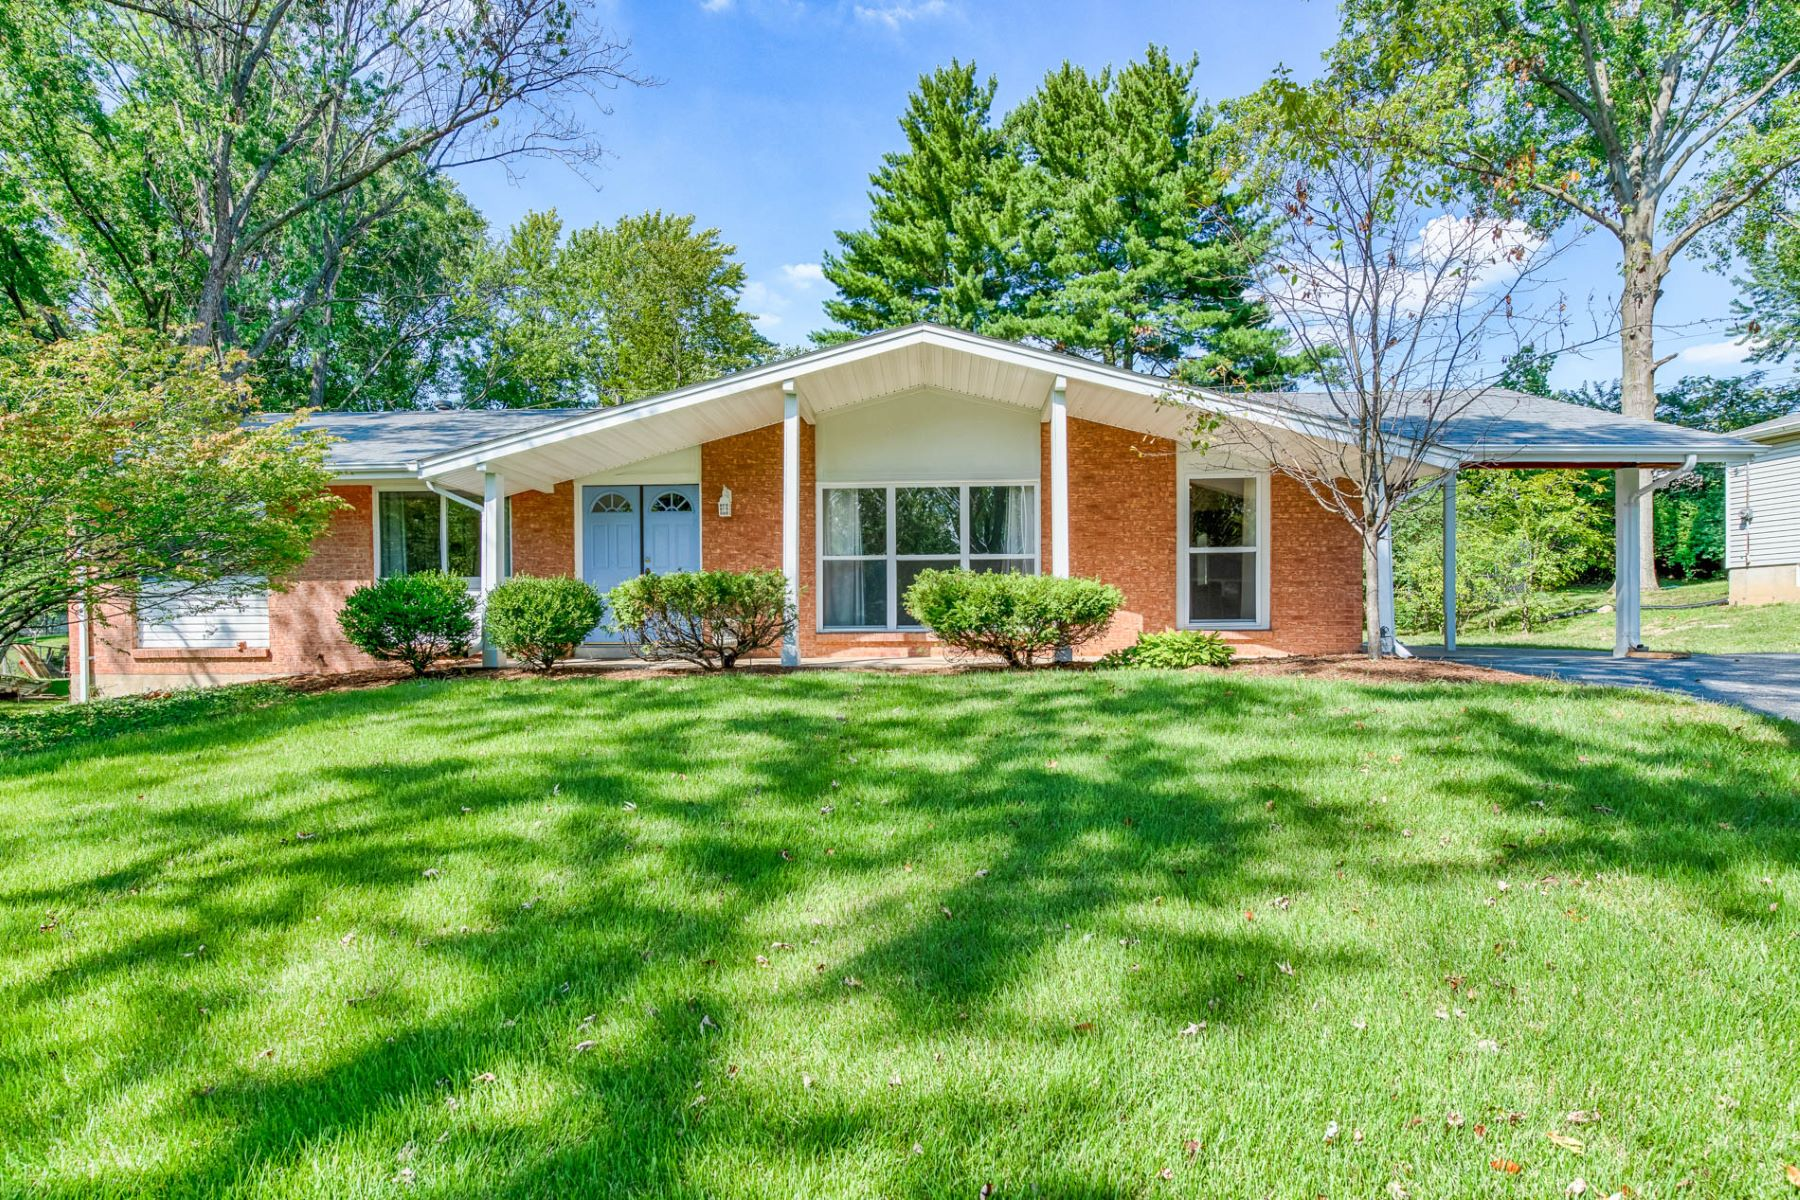 Single Family Home for Sale at Mackinac Dr 1135 Mackinac Dr St. Louis, Missouri 63105 United States